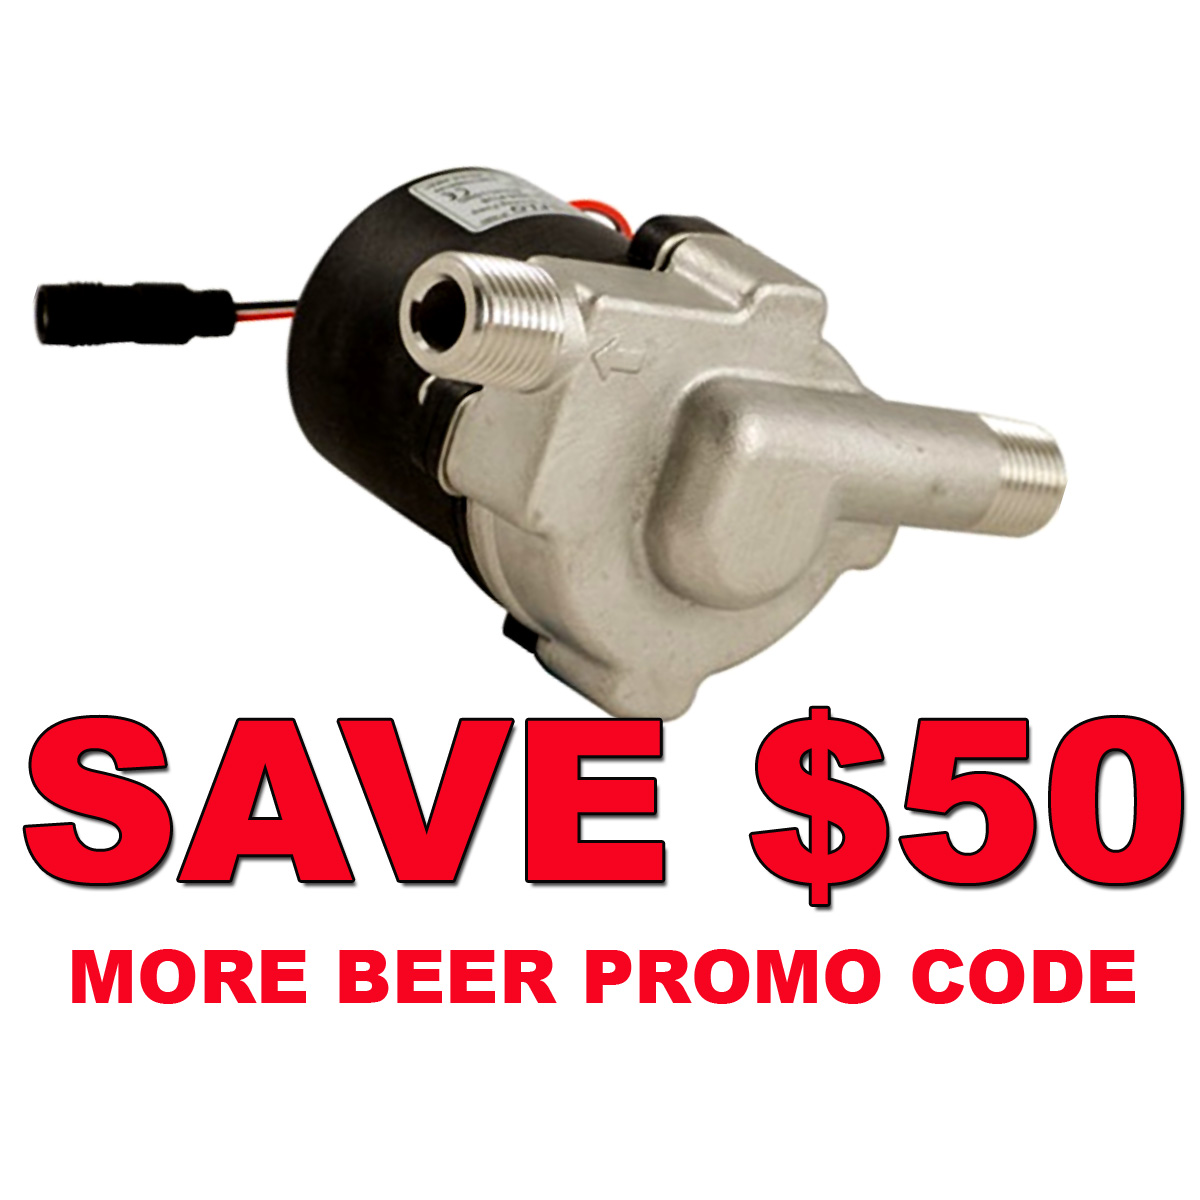 Home Wine Making Coupon Codes for Save $50 On A New Stainless Steel Compact Transfer Pump and Get Free Shipping MoreBeer Promo Code Coupon Code